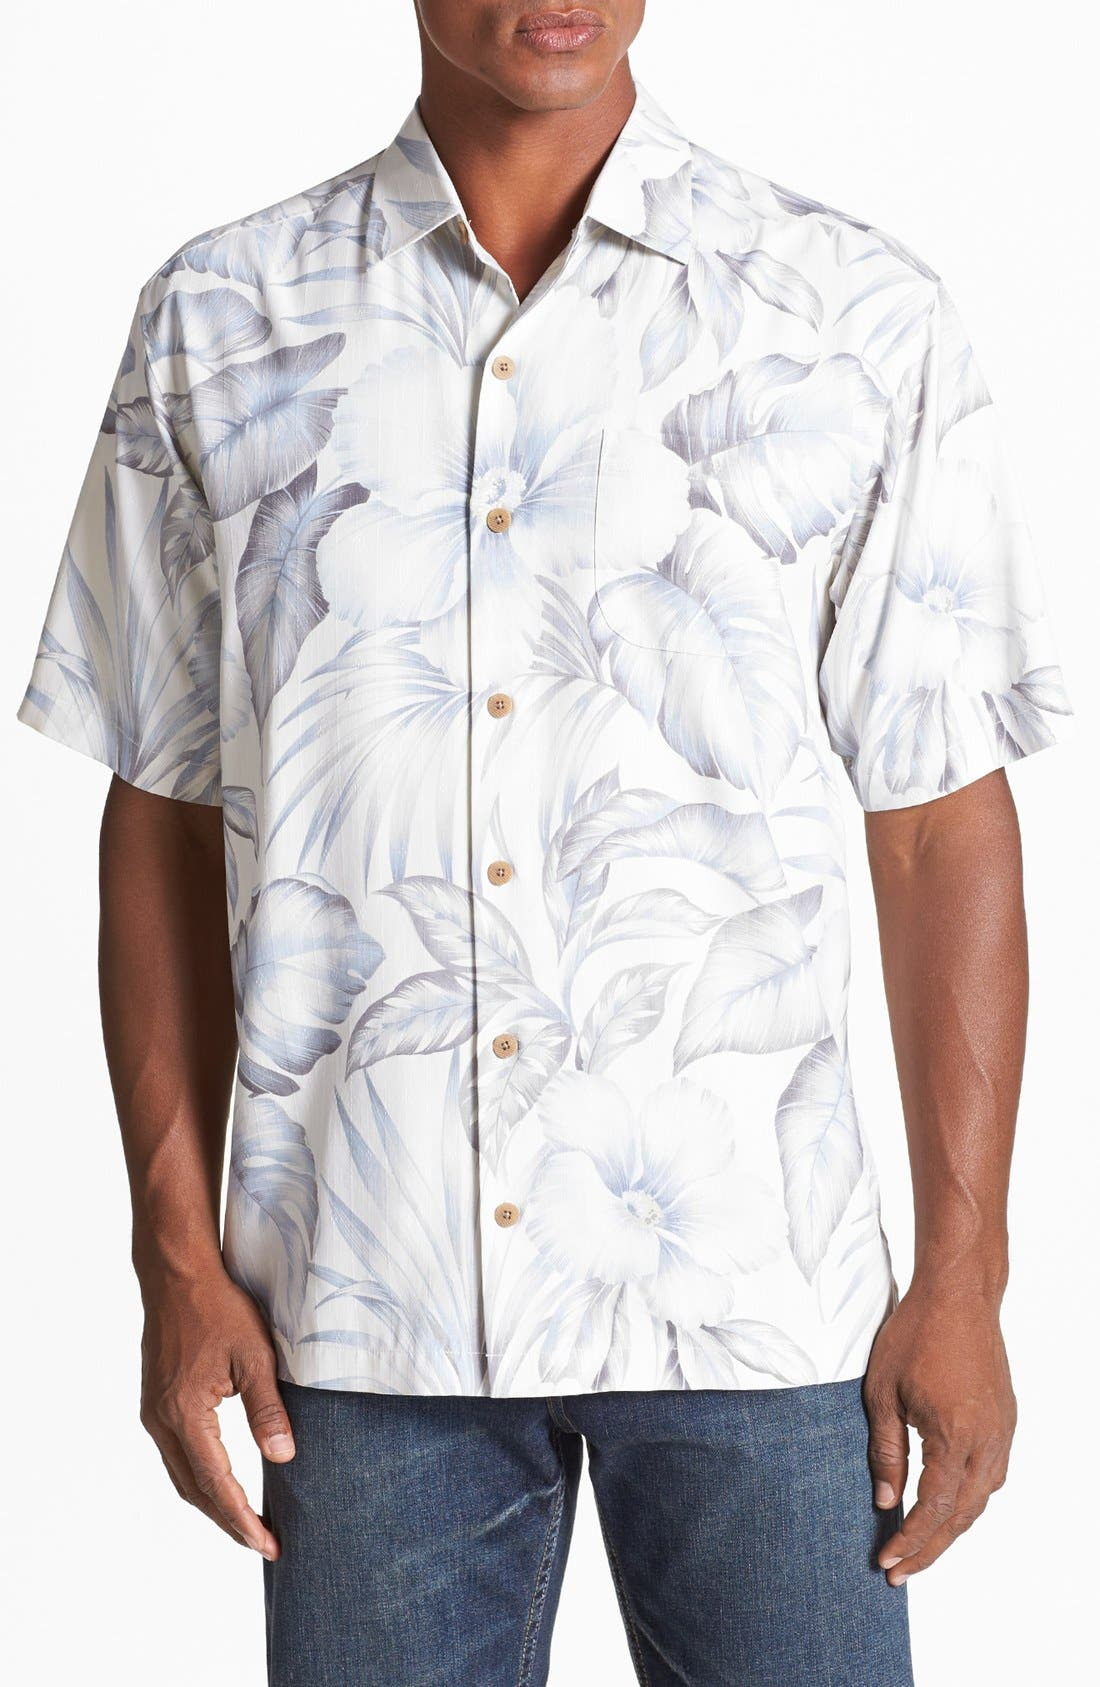 Main Image - Tommy Bahama 'Gardens of Casablanca' Silk Campshirt